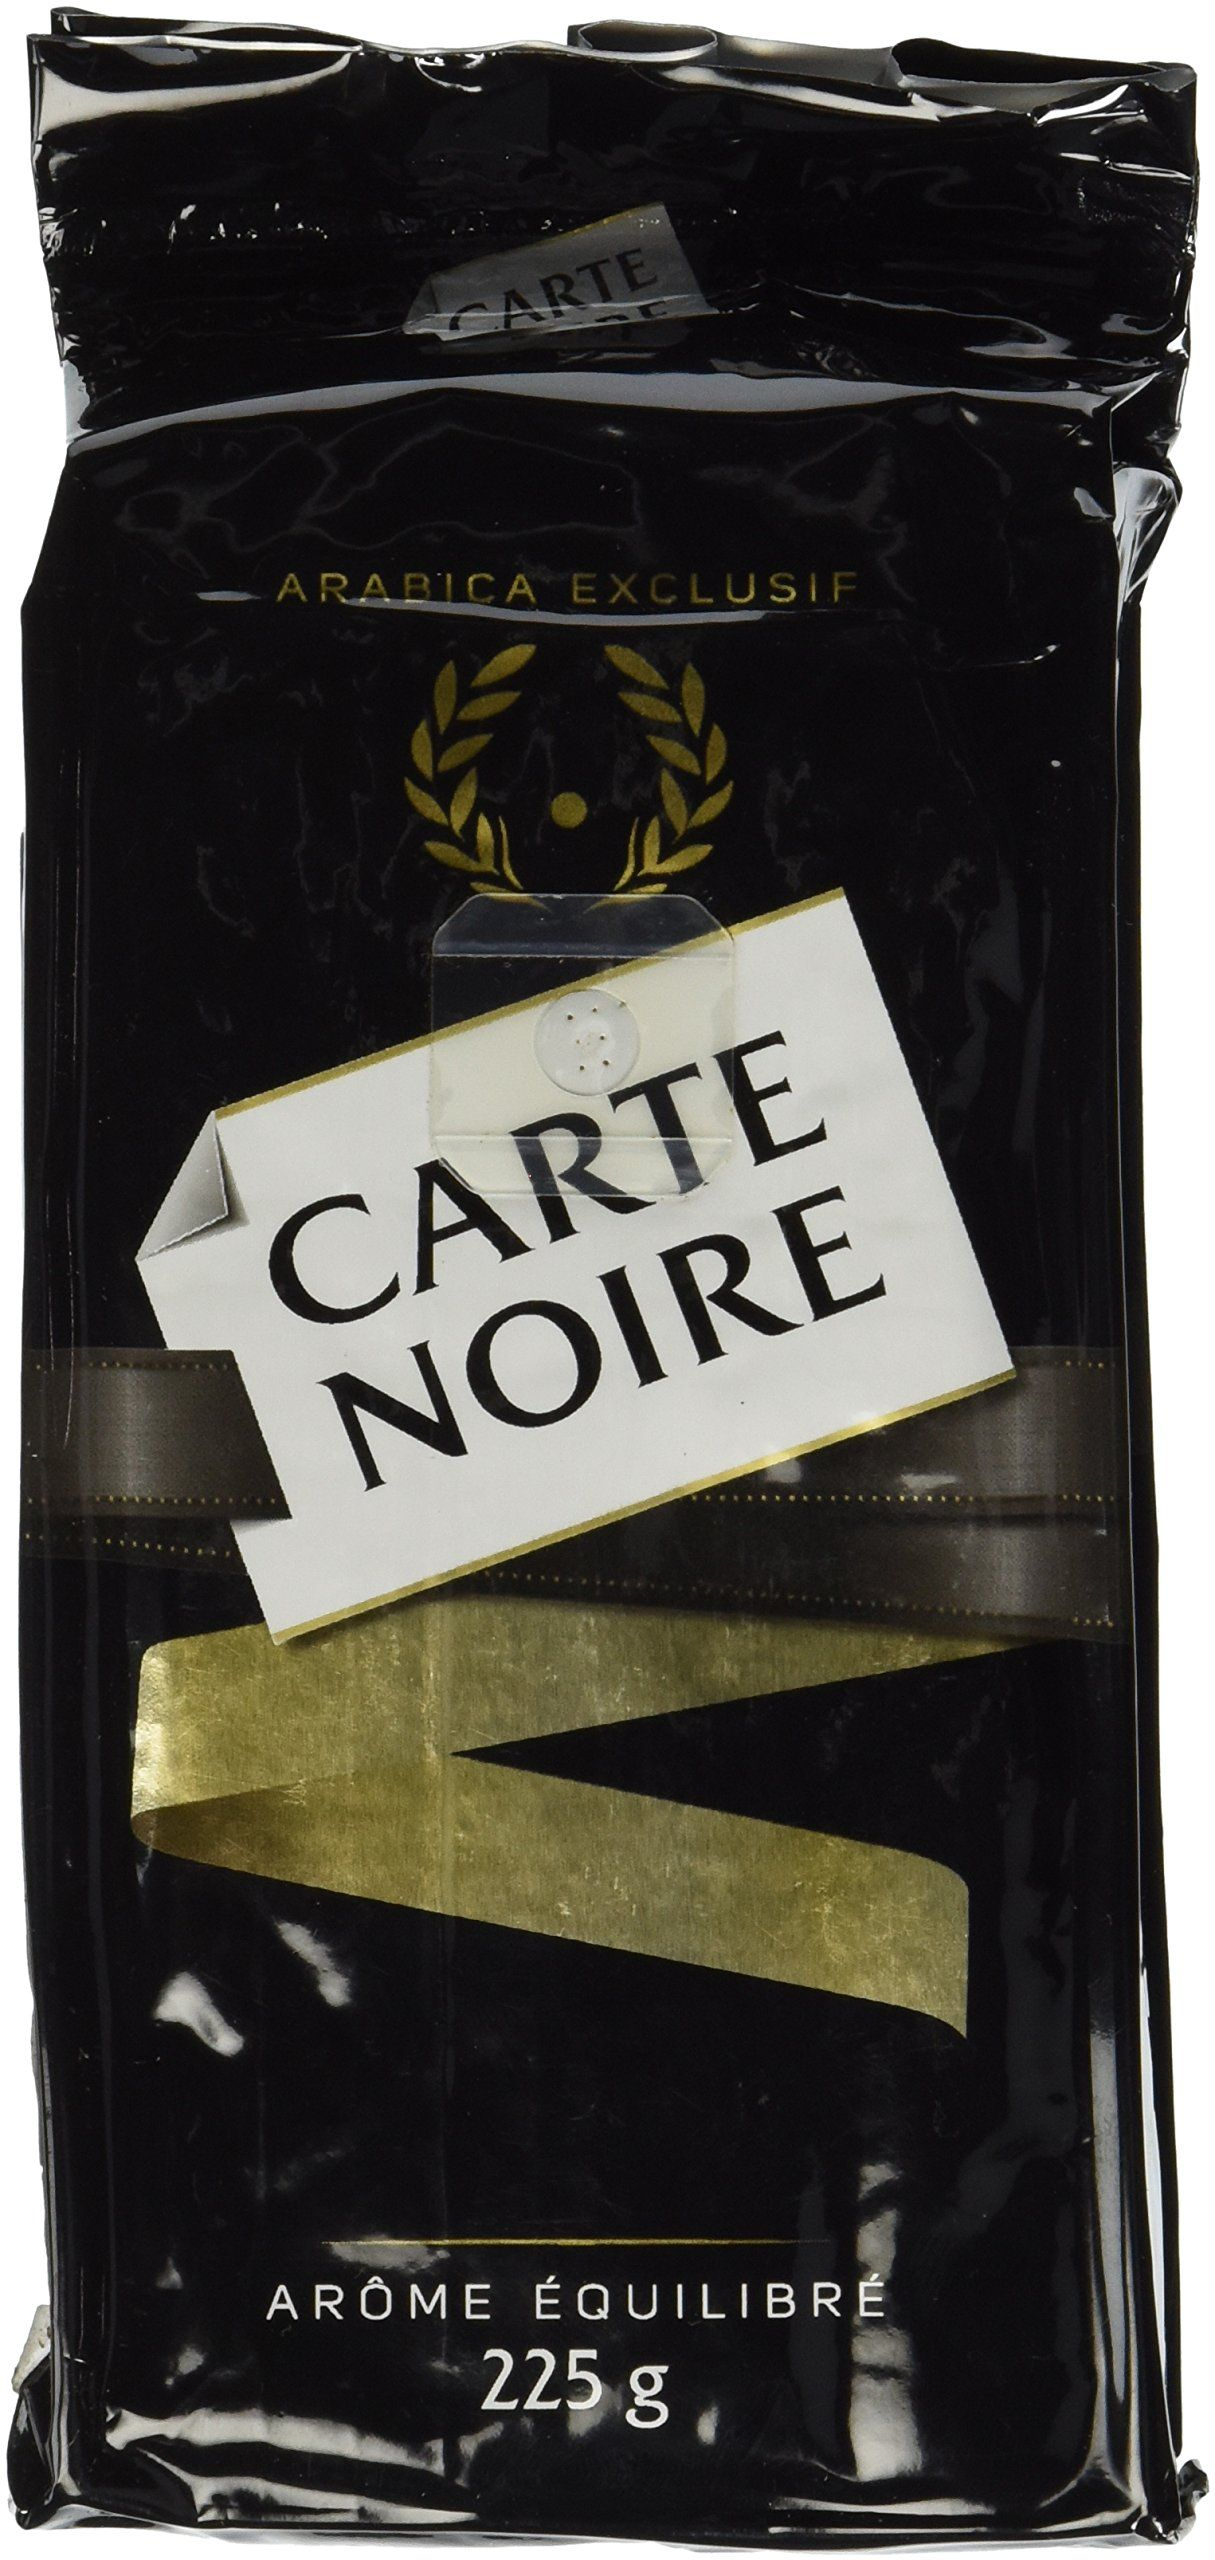 Coffee carte noire authentic imported french gourmet